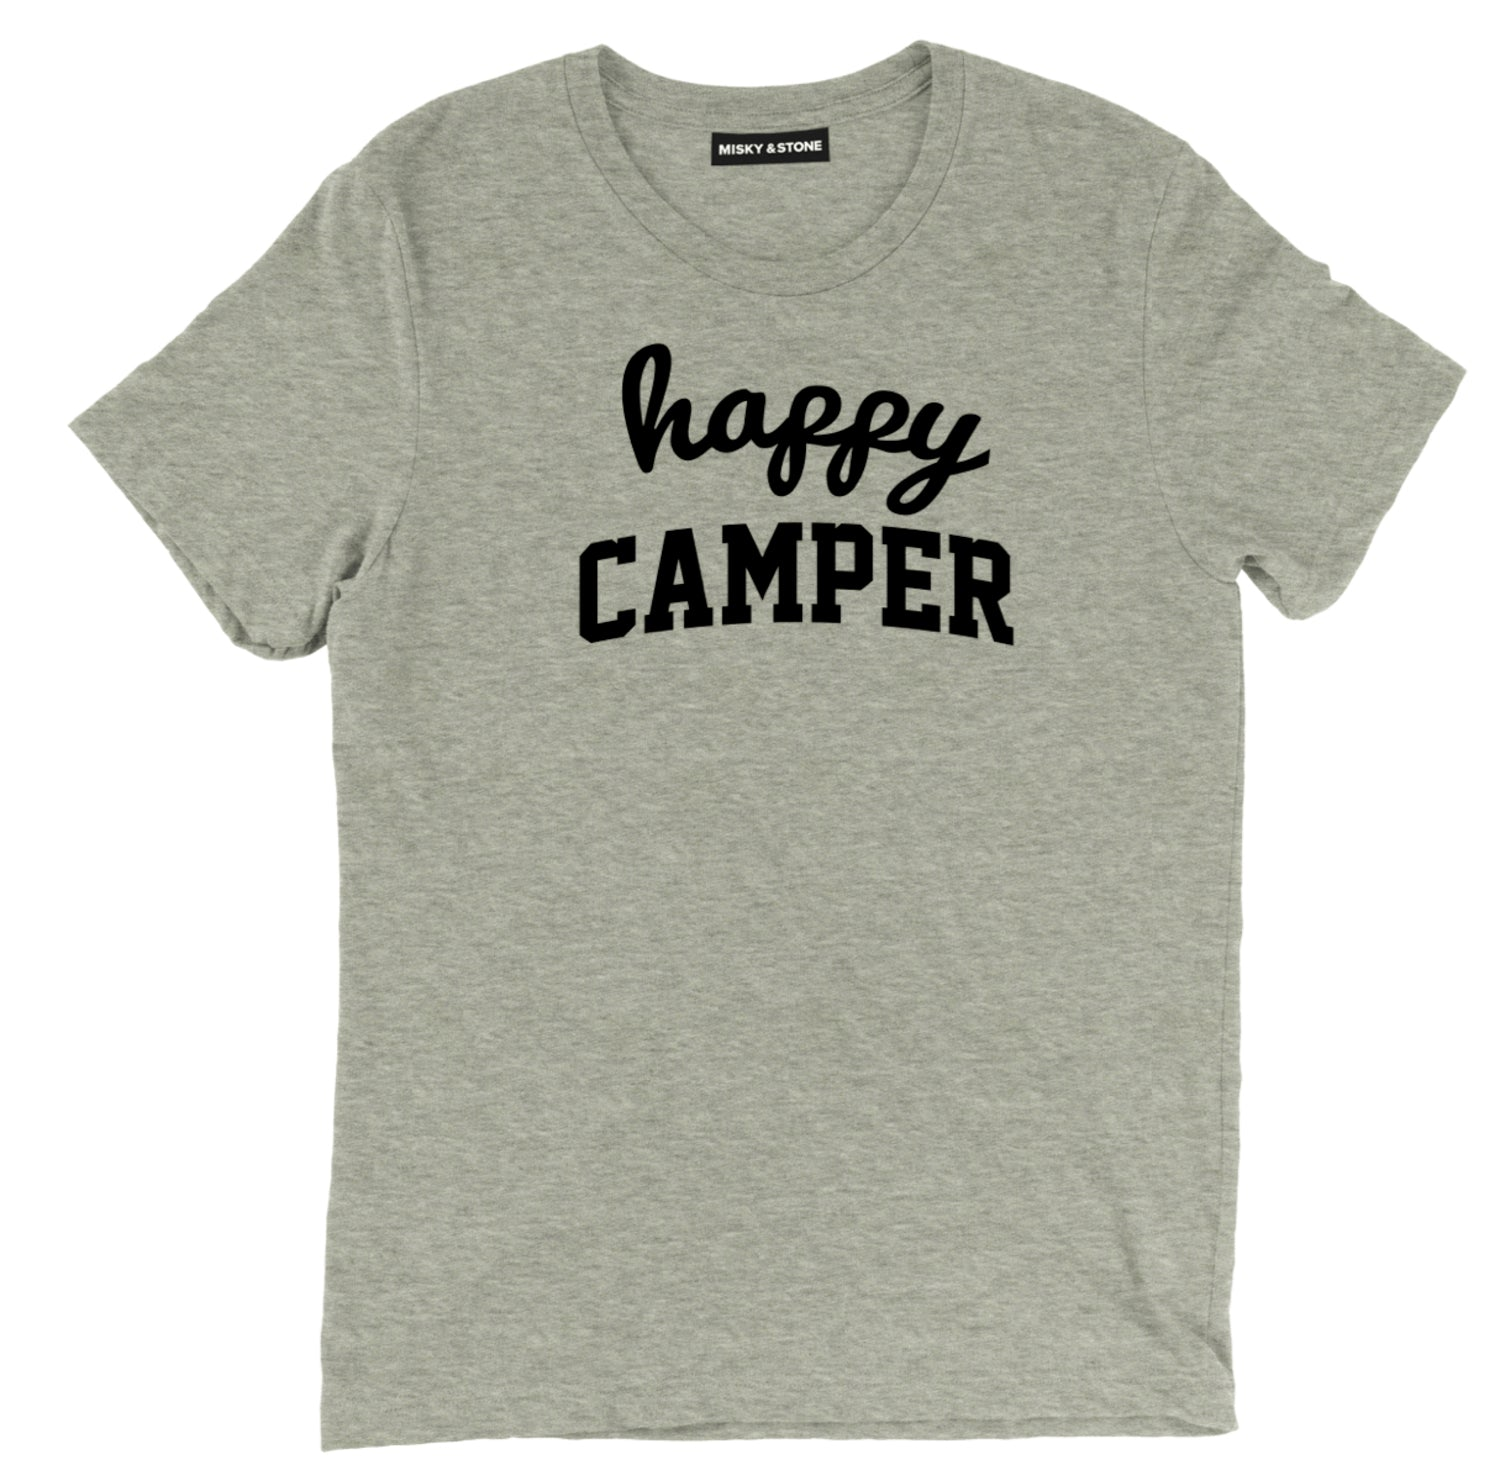 Happy Camper camping tee shirt, Happy Camper camping apparel, Happy Camper camping merch, camping clothing, funny camping shirt, camp tee shirt, cool camp tee, camping graphic tee,